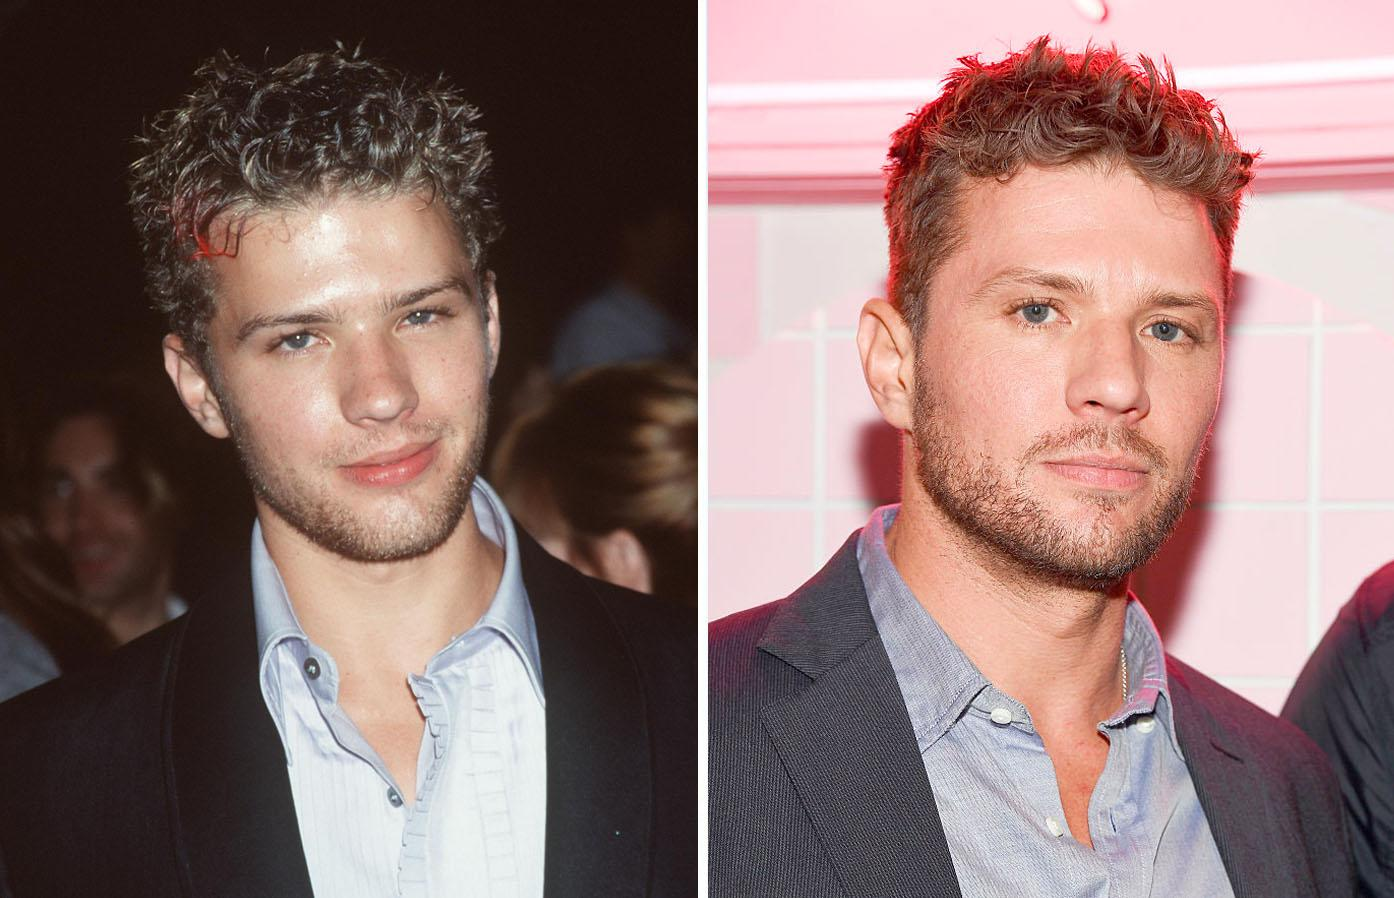 ryan-phillippe-now-1540929692412-1540929694433.jpg